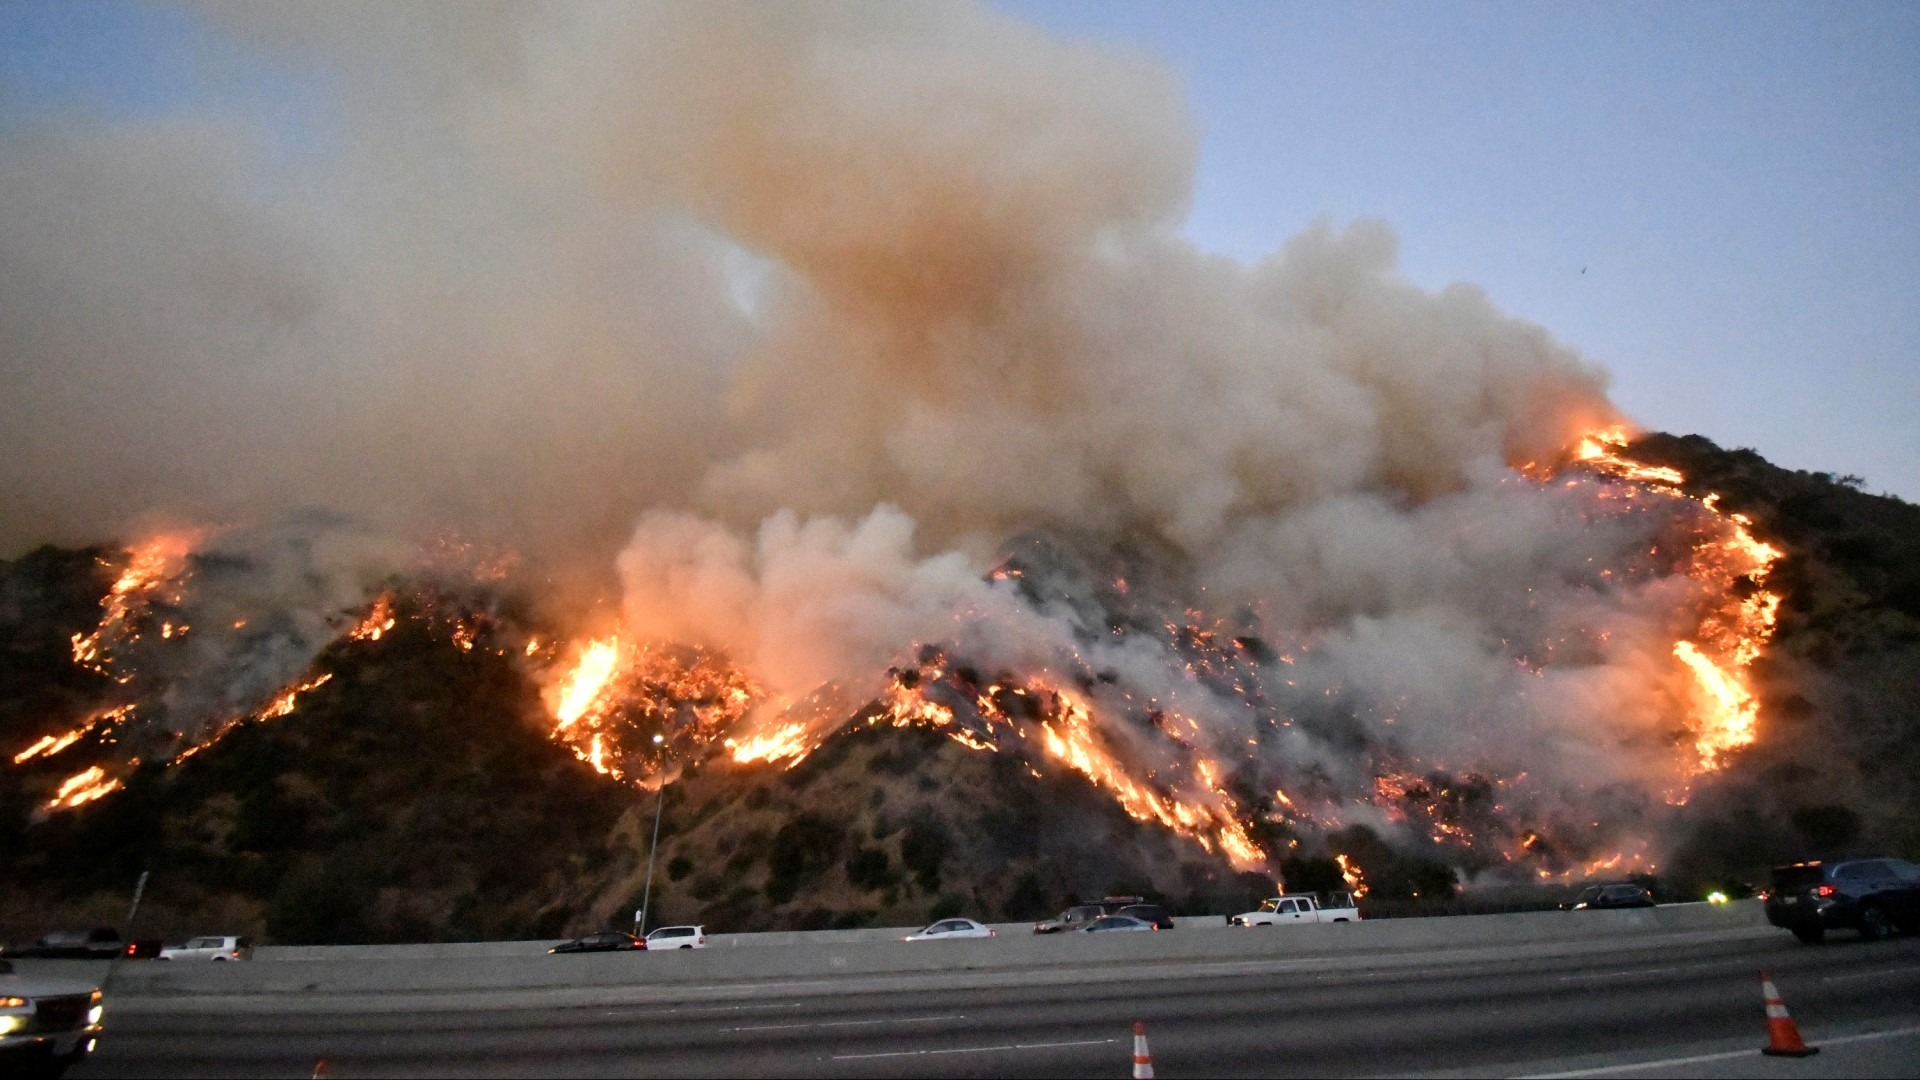 showing extreme fire behavior - 992×744